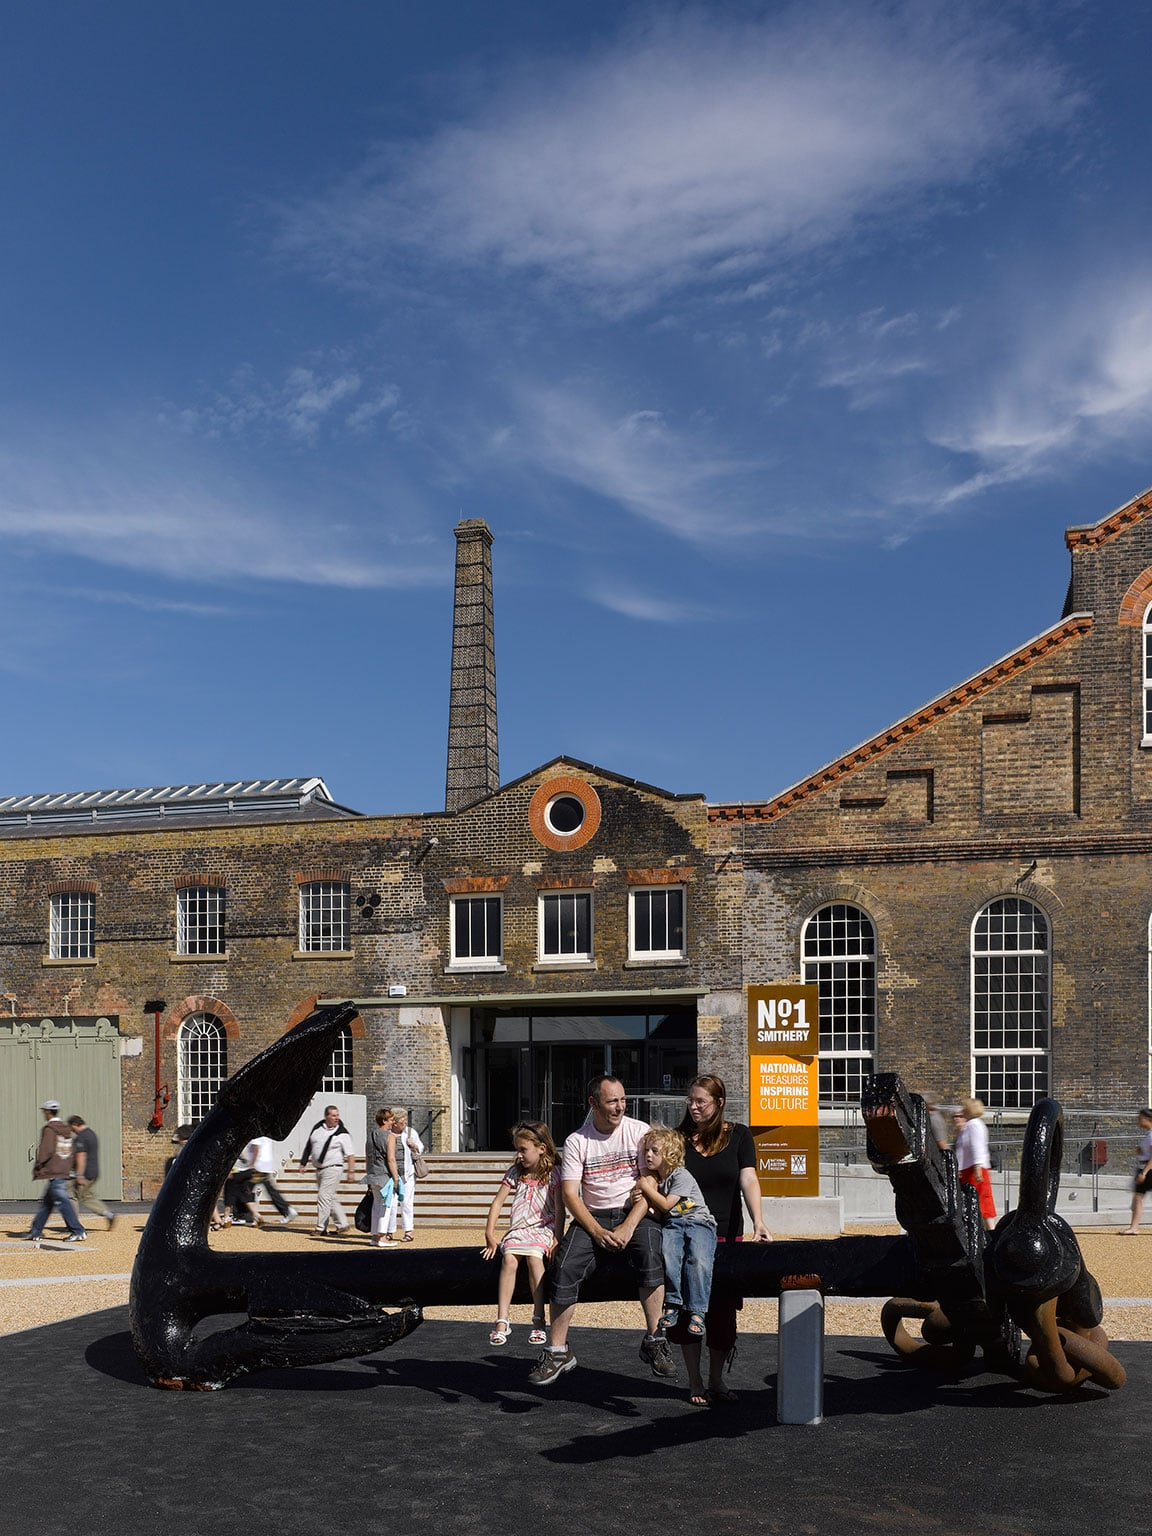 The historic dockyard chatham art fund for The chatham